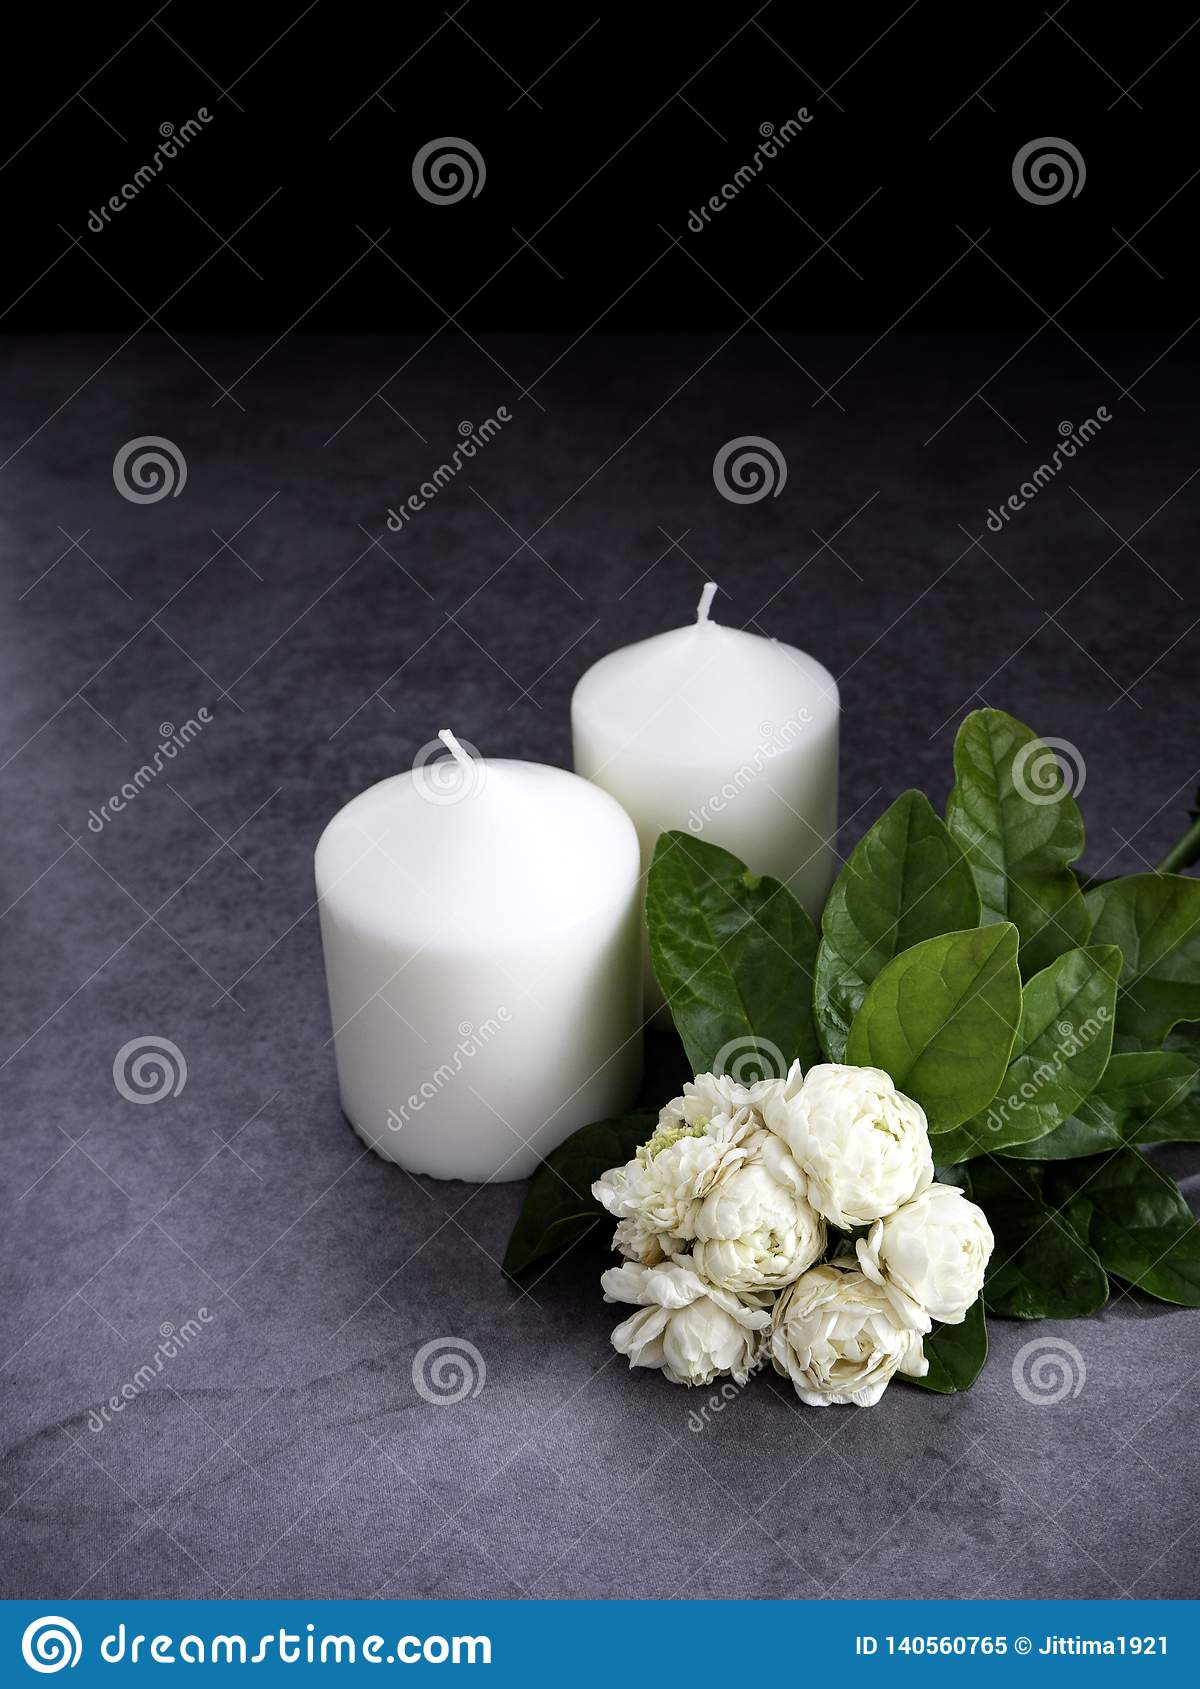 Jasmine and candles on dark background